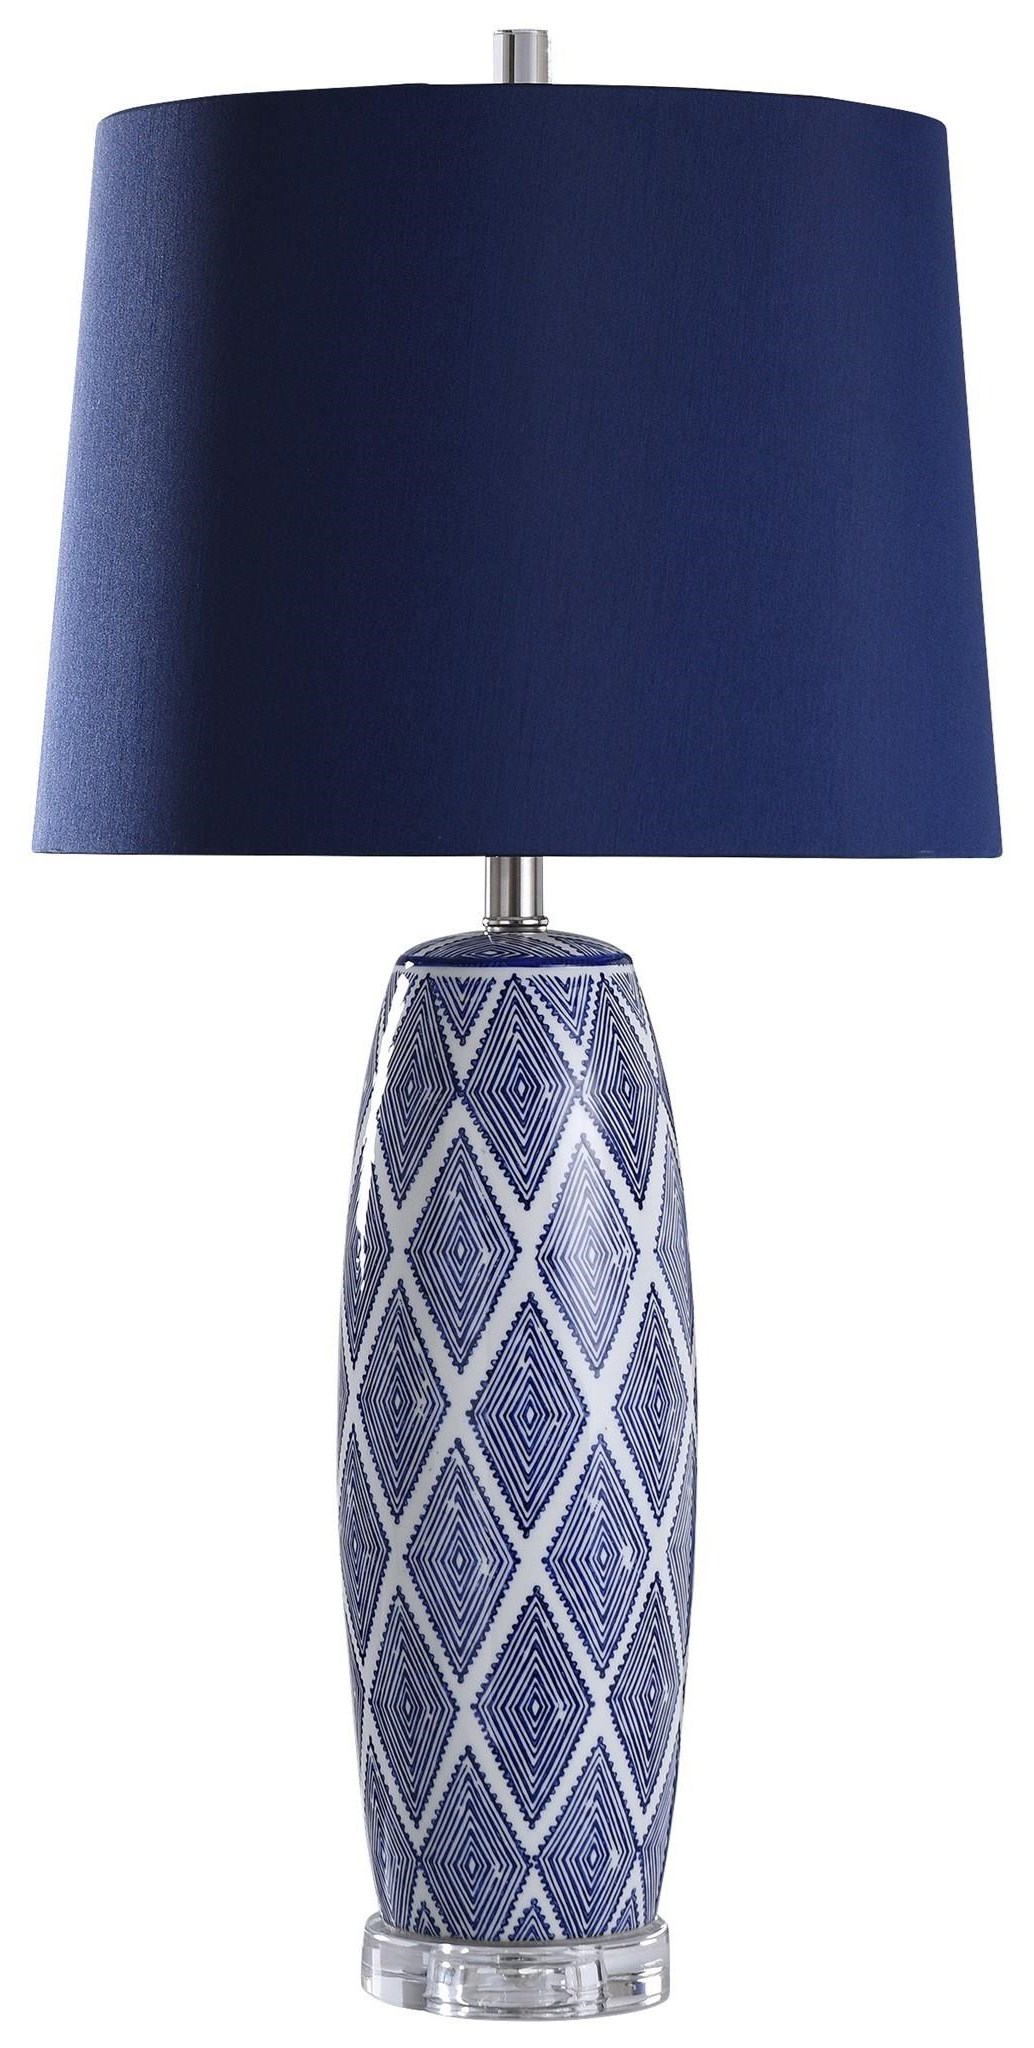 2020 LAMPS NAVY CERAMIC by StyleCraft at Furniture Fair - North Carolina